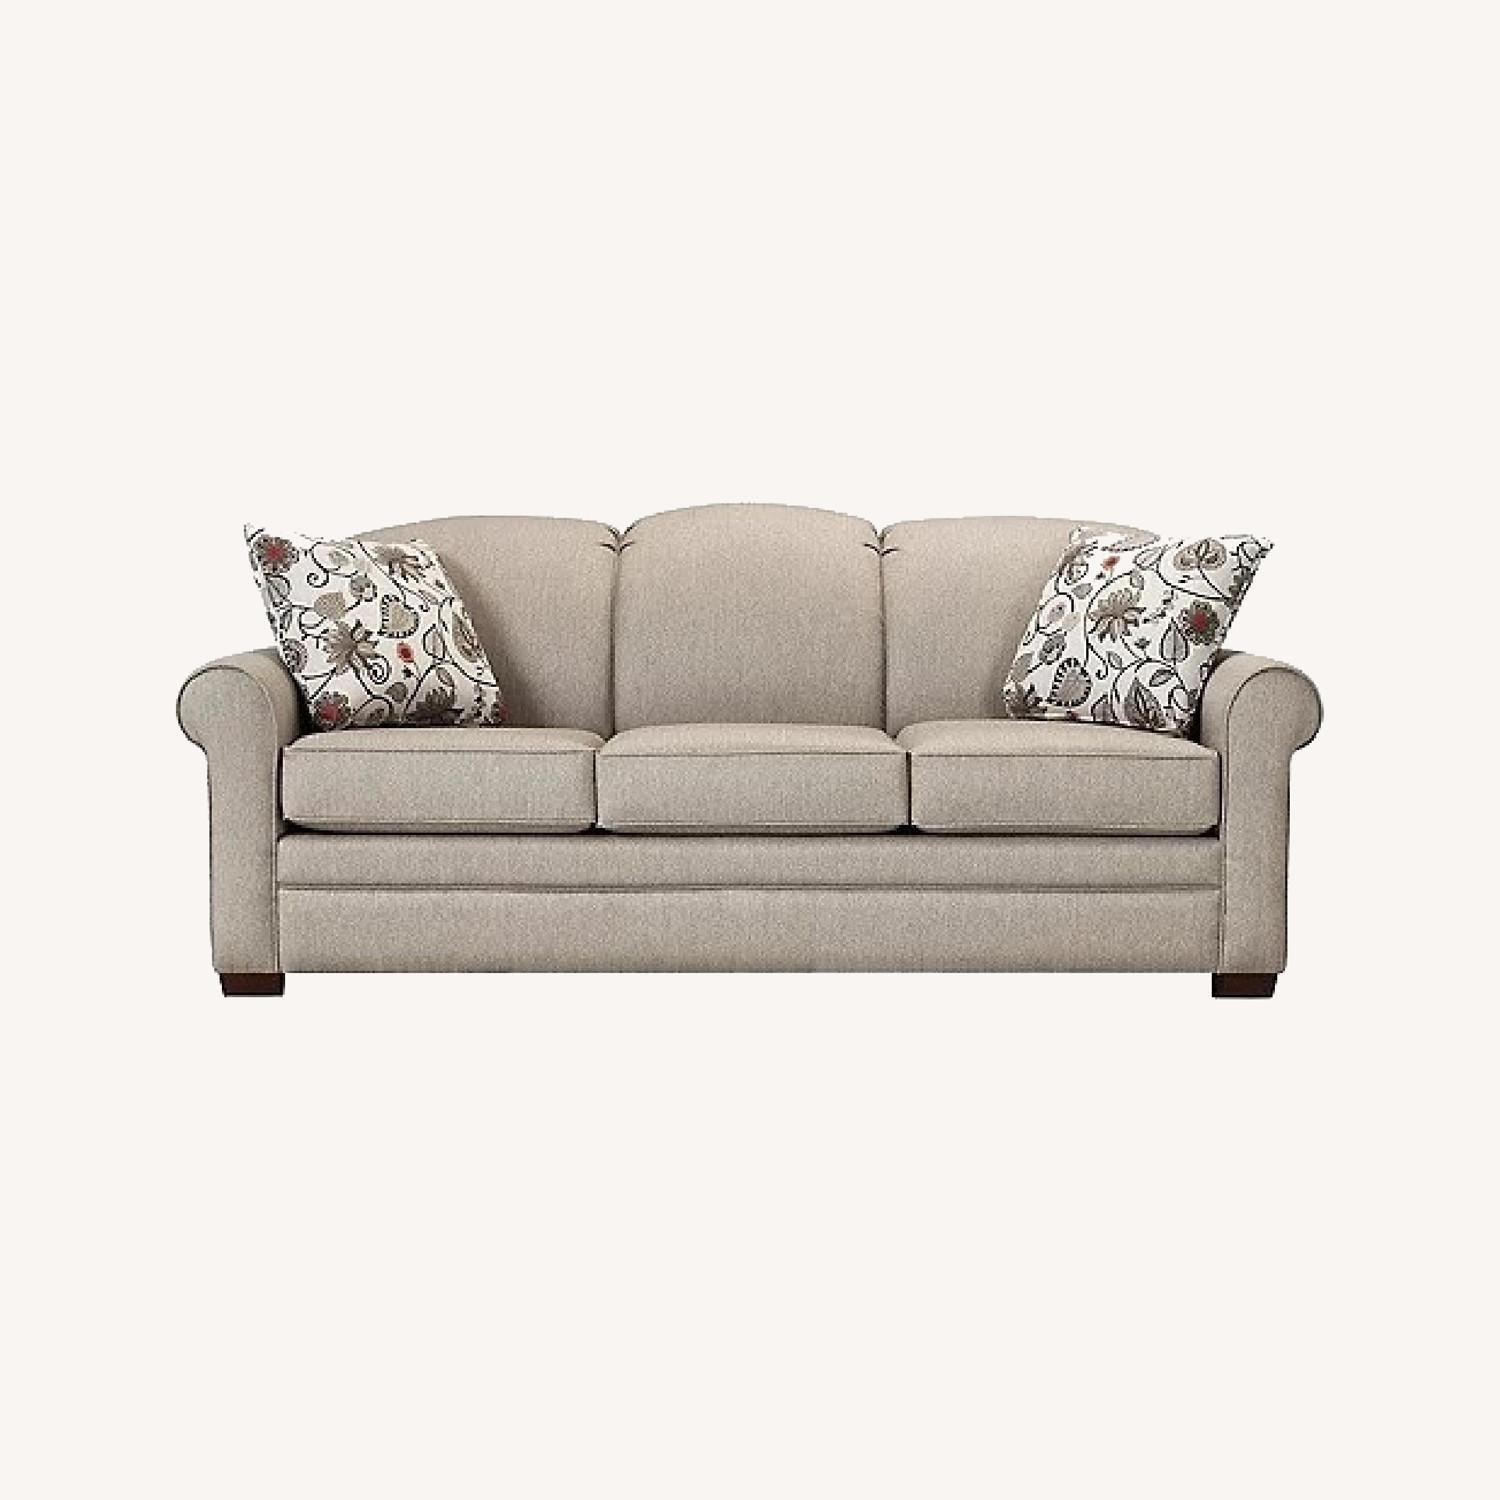 Raymour & Flanigan Green Couch with Reversible Pillows - image-0